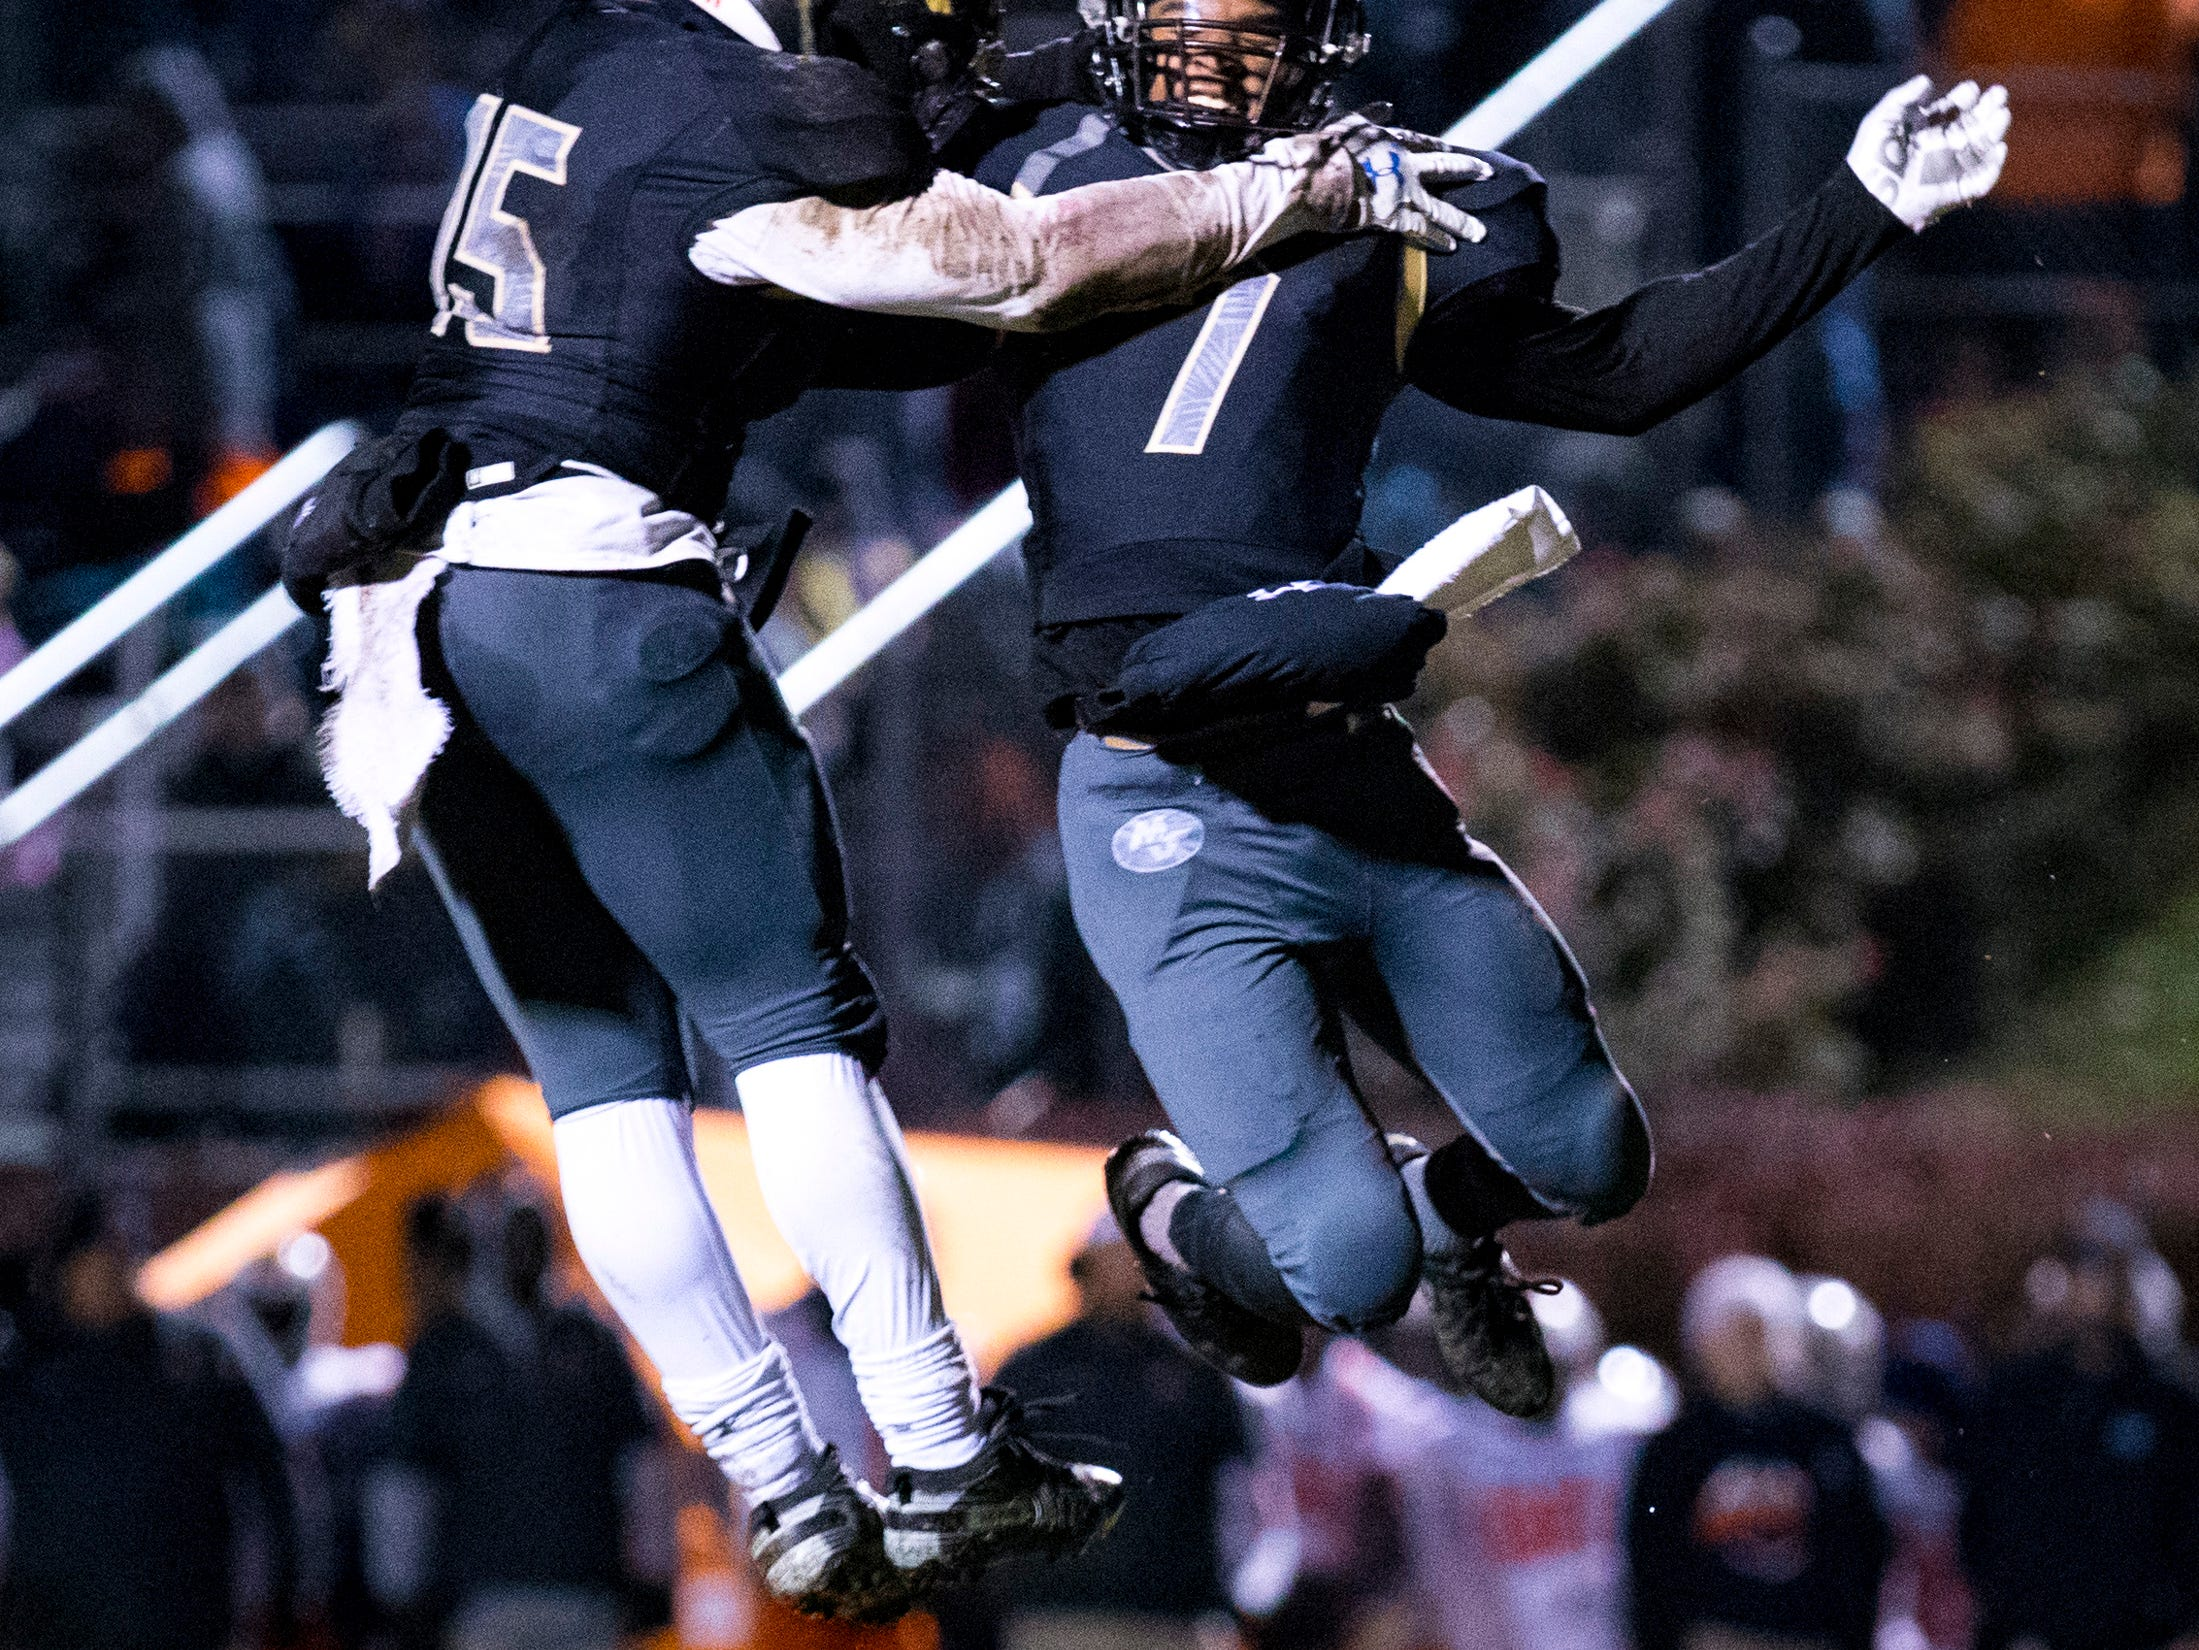 Mt. Juliet's Alvin Mixon (7) celebrates with Mt. Juliet's Justin Harrigan (15) after Mixon scored a touchdown during Mt. Juliet's game against Blackman at Mt. Juliet High School in Mt. Juliet on Friday, Nov. 9, 2018.